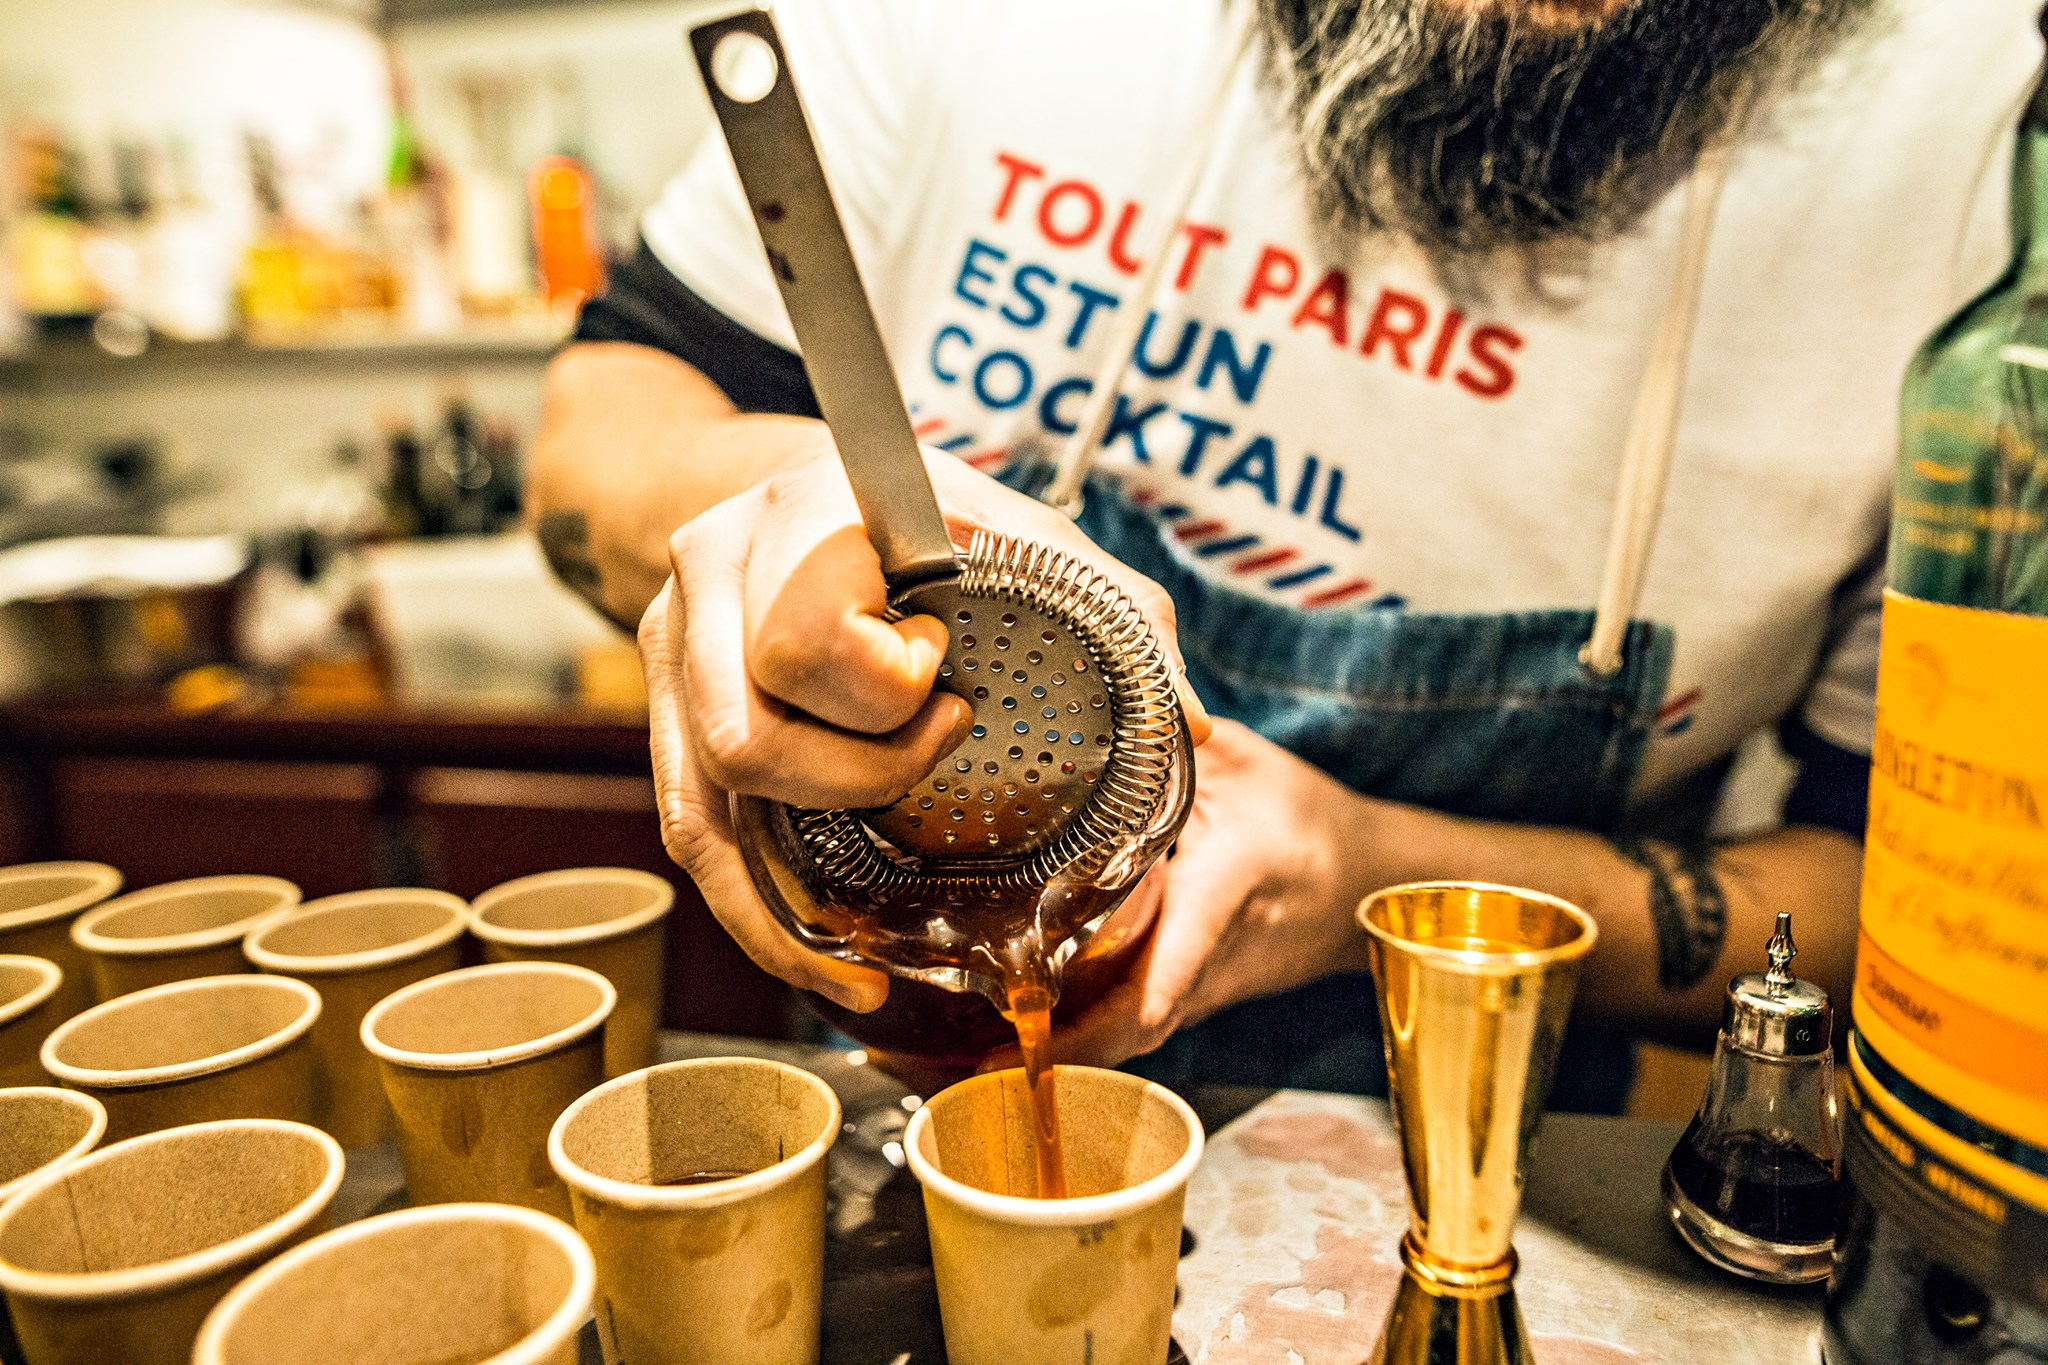 Paris Cocktail Week - Réalisation de cocktails par un bartender